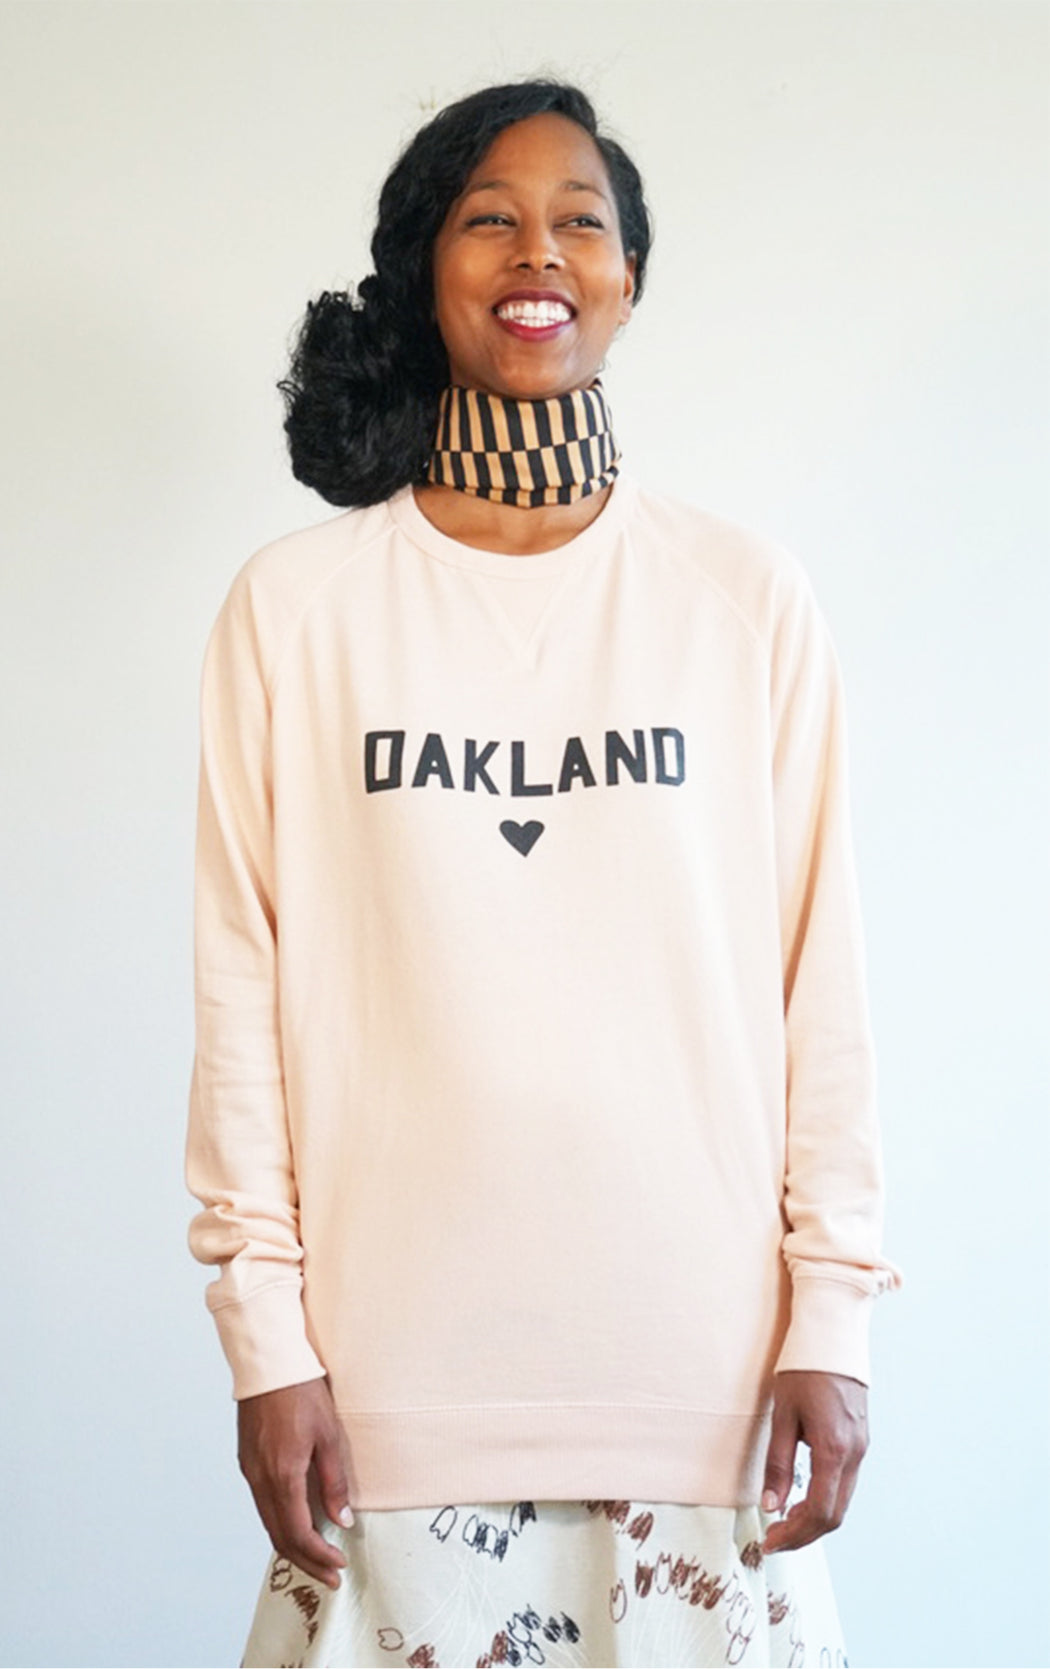 pink super soft love oakland sweatshirt in a cool crew neck style made in a soft cotton blend with love oakland heart graphic on front